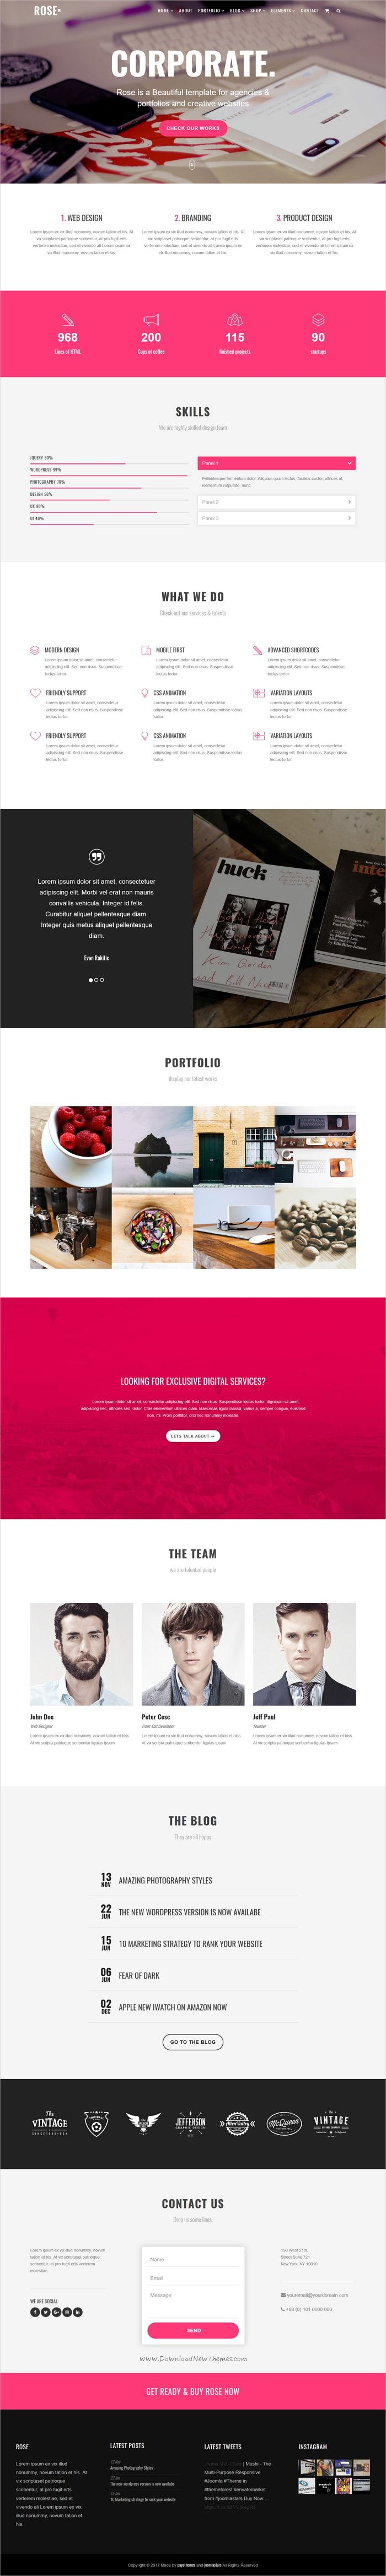 Rose is a multipurpose responsive onepage #Joomla template for stunning #corporate website with 12+ homepage layouts download now➩ https://themeforest.net/item/rose-multipurpose-responsive-one-page-joomla-theme/19559598?ref=Datasata